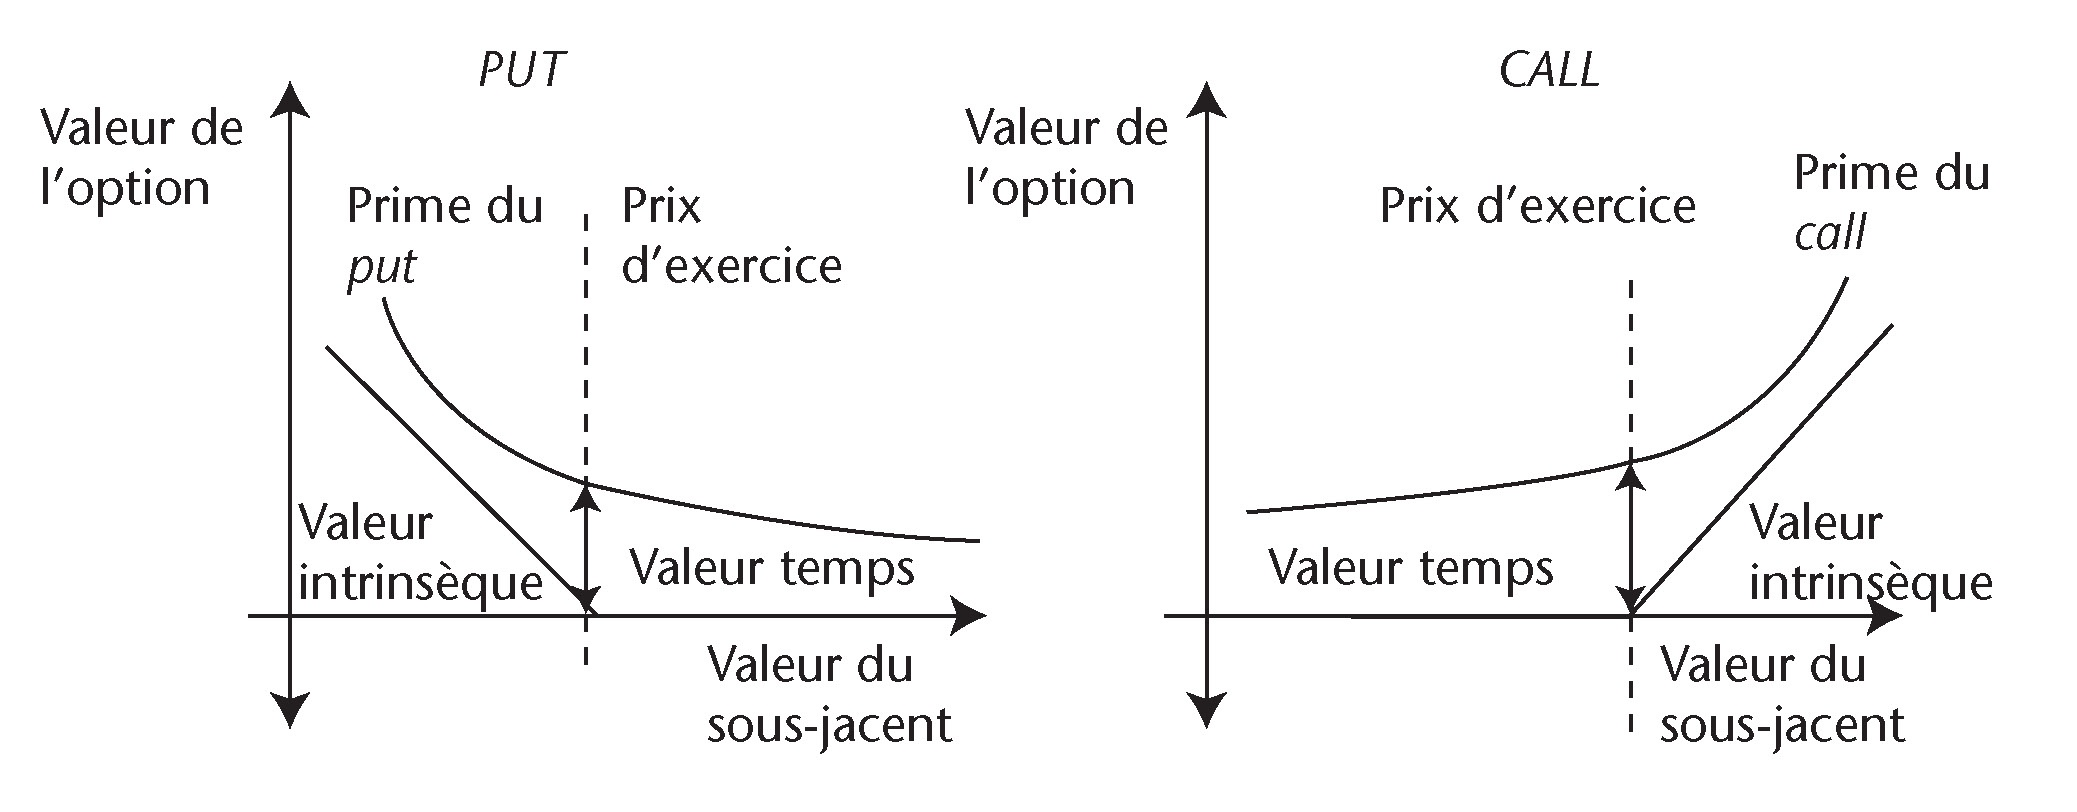 option valeur de loption